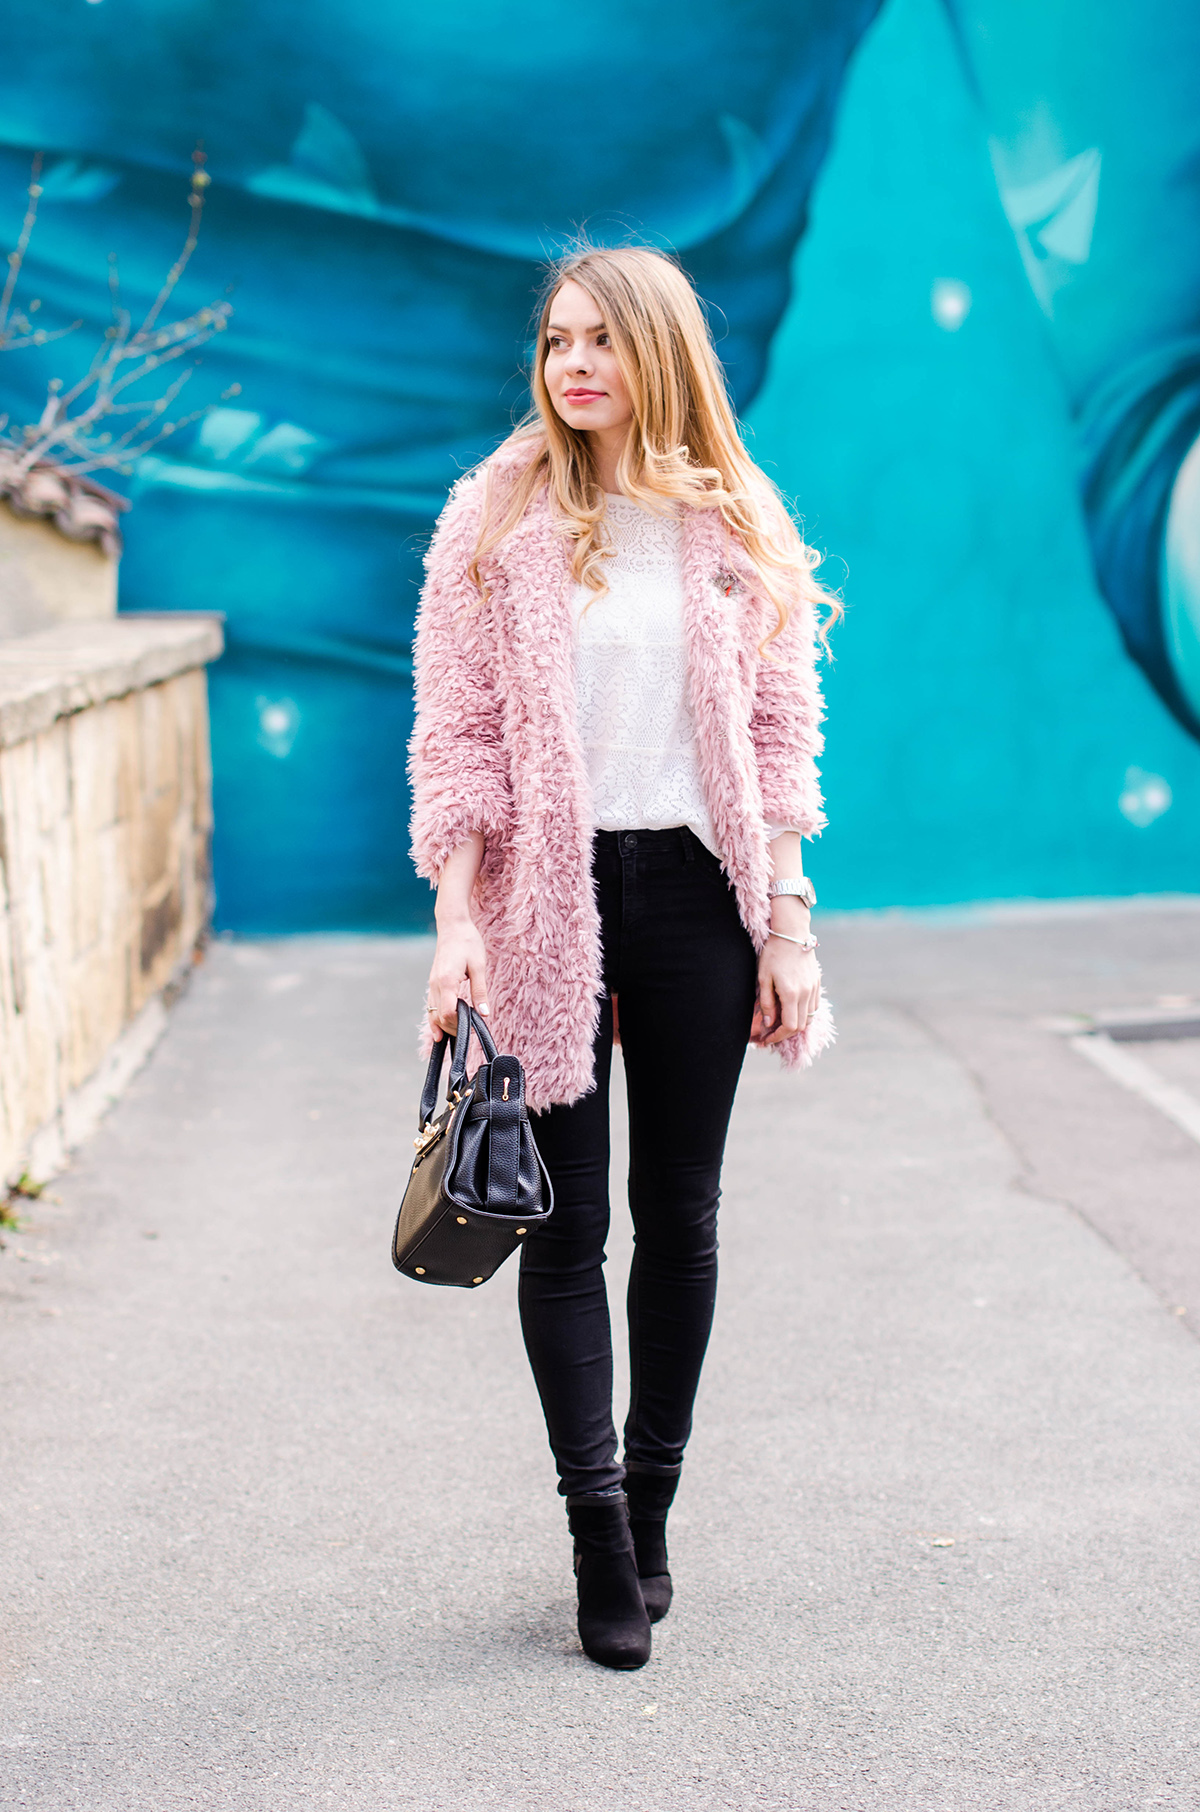 fluffy-pink-coat-black-skinny-pants-pink-wish-outfit (2)